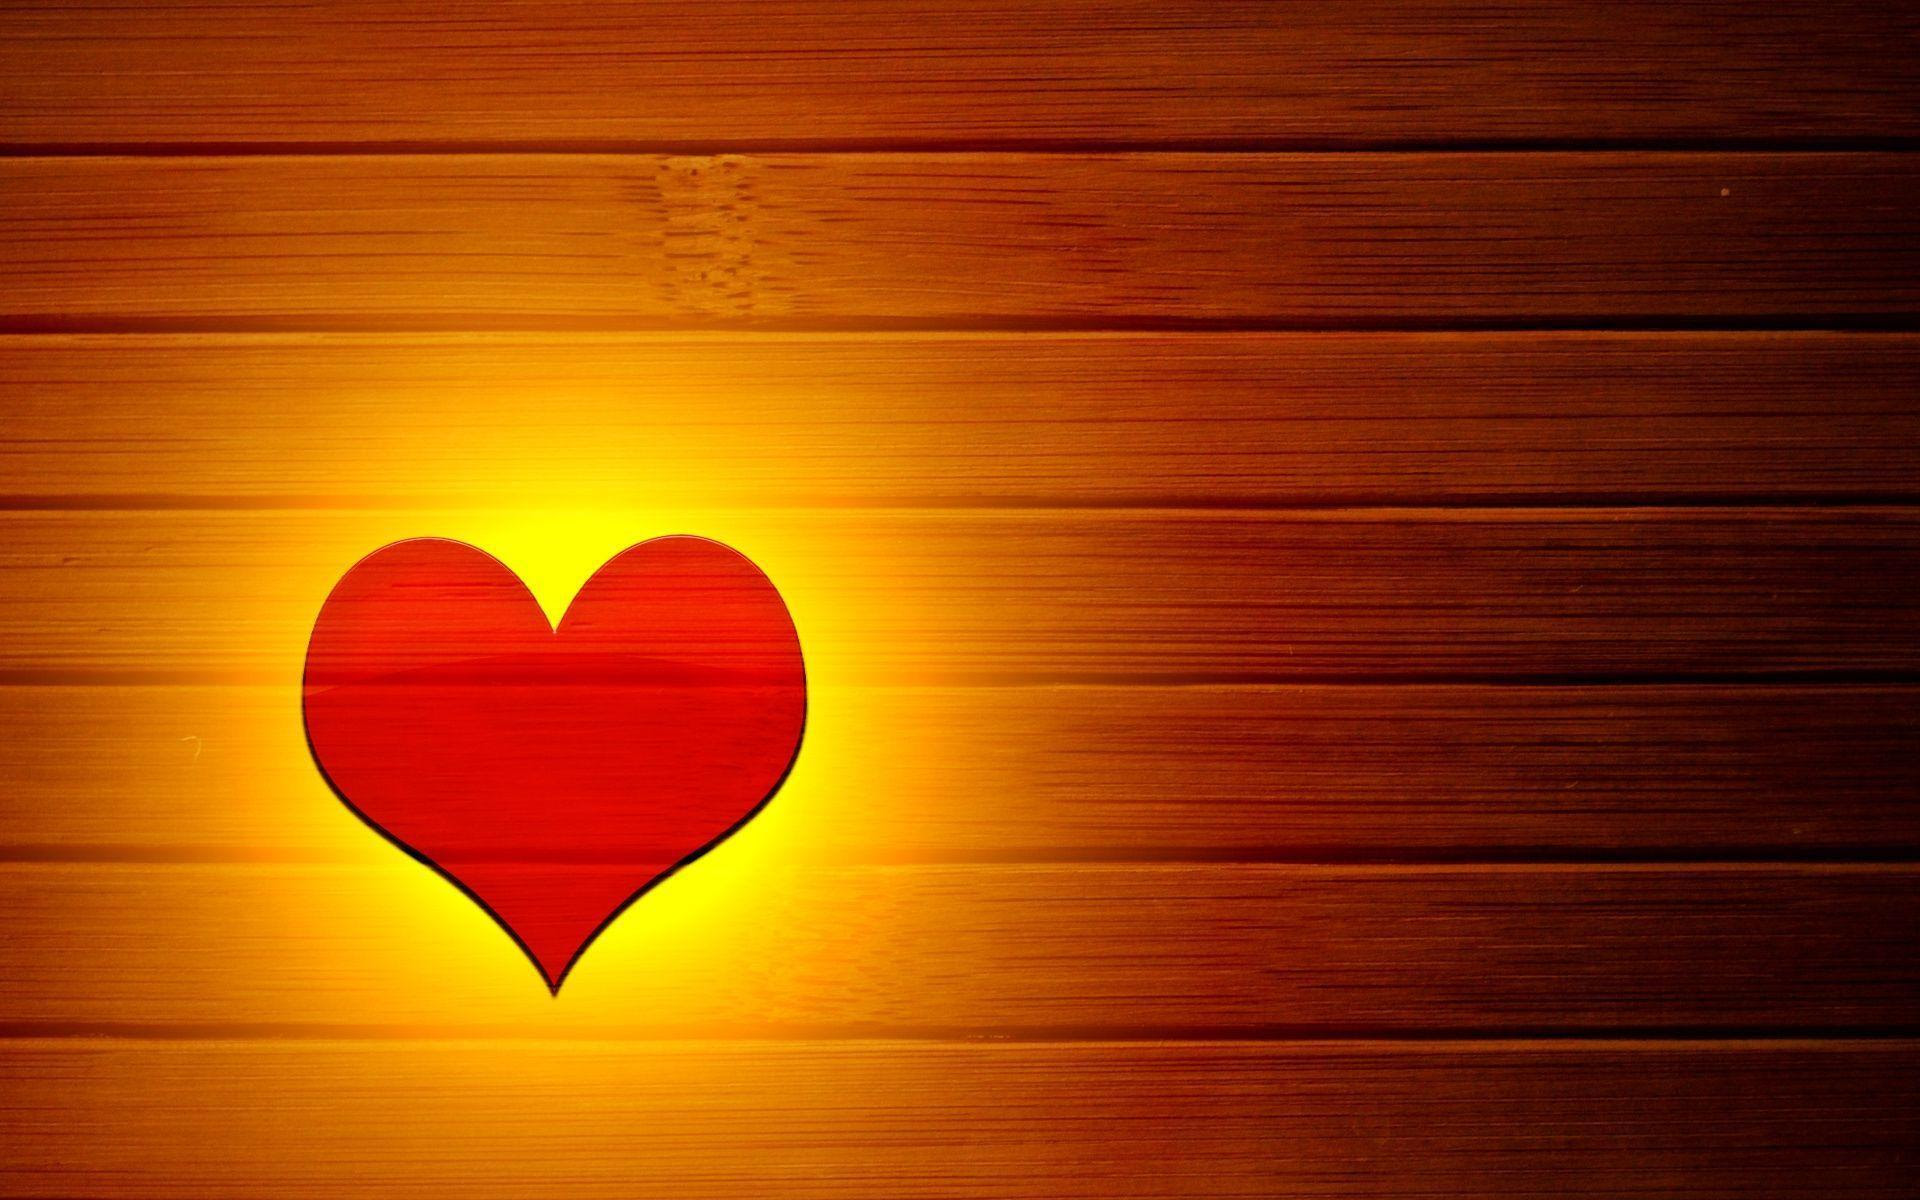 Love Backgrounds Wallpapers  Wallpaper Cave